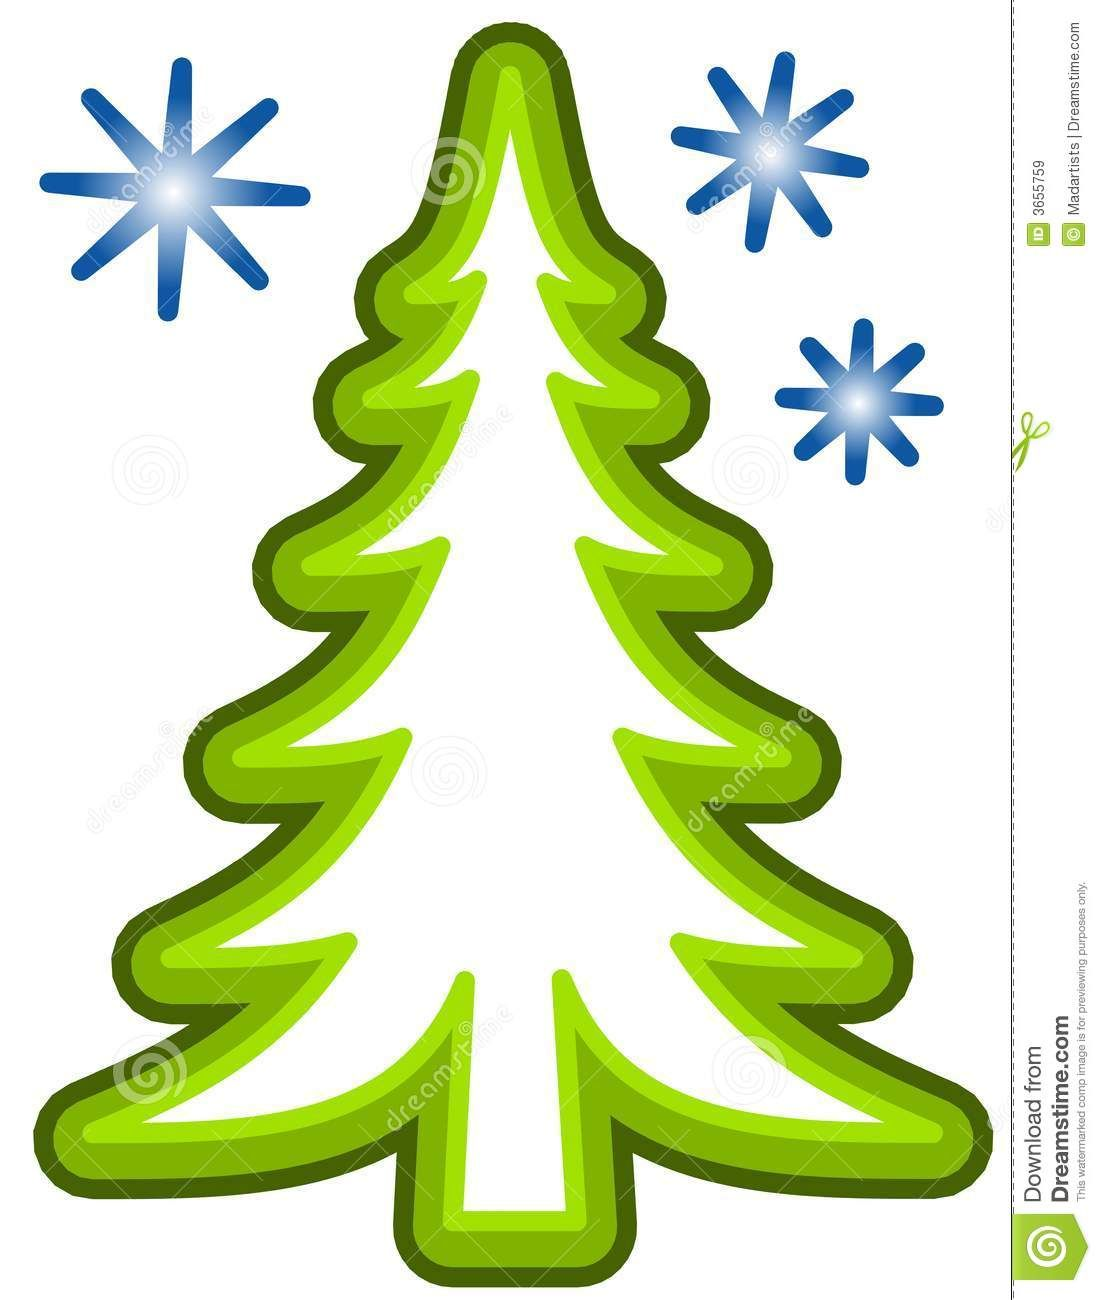 Simple Christmas Tree Clip Art Christmas Tree Clipart Christmas Tree Outline Christmas Tree Images